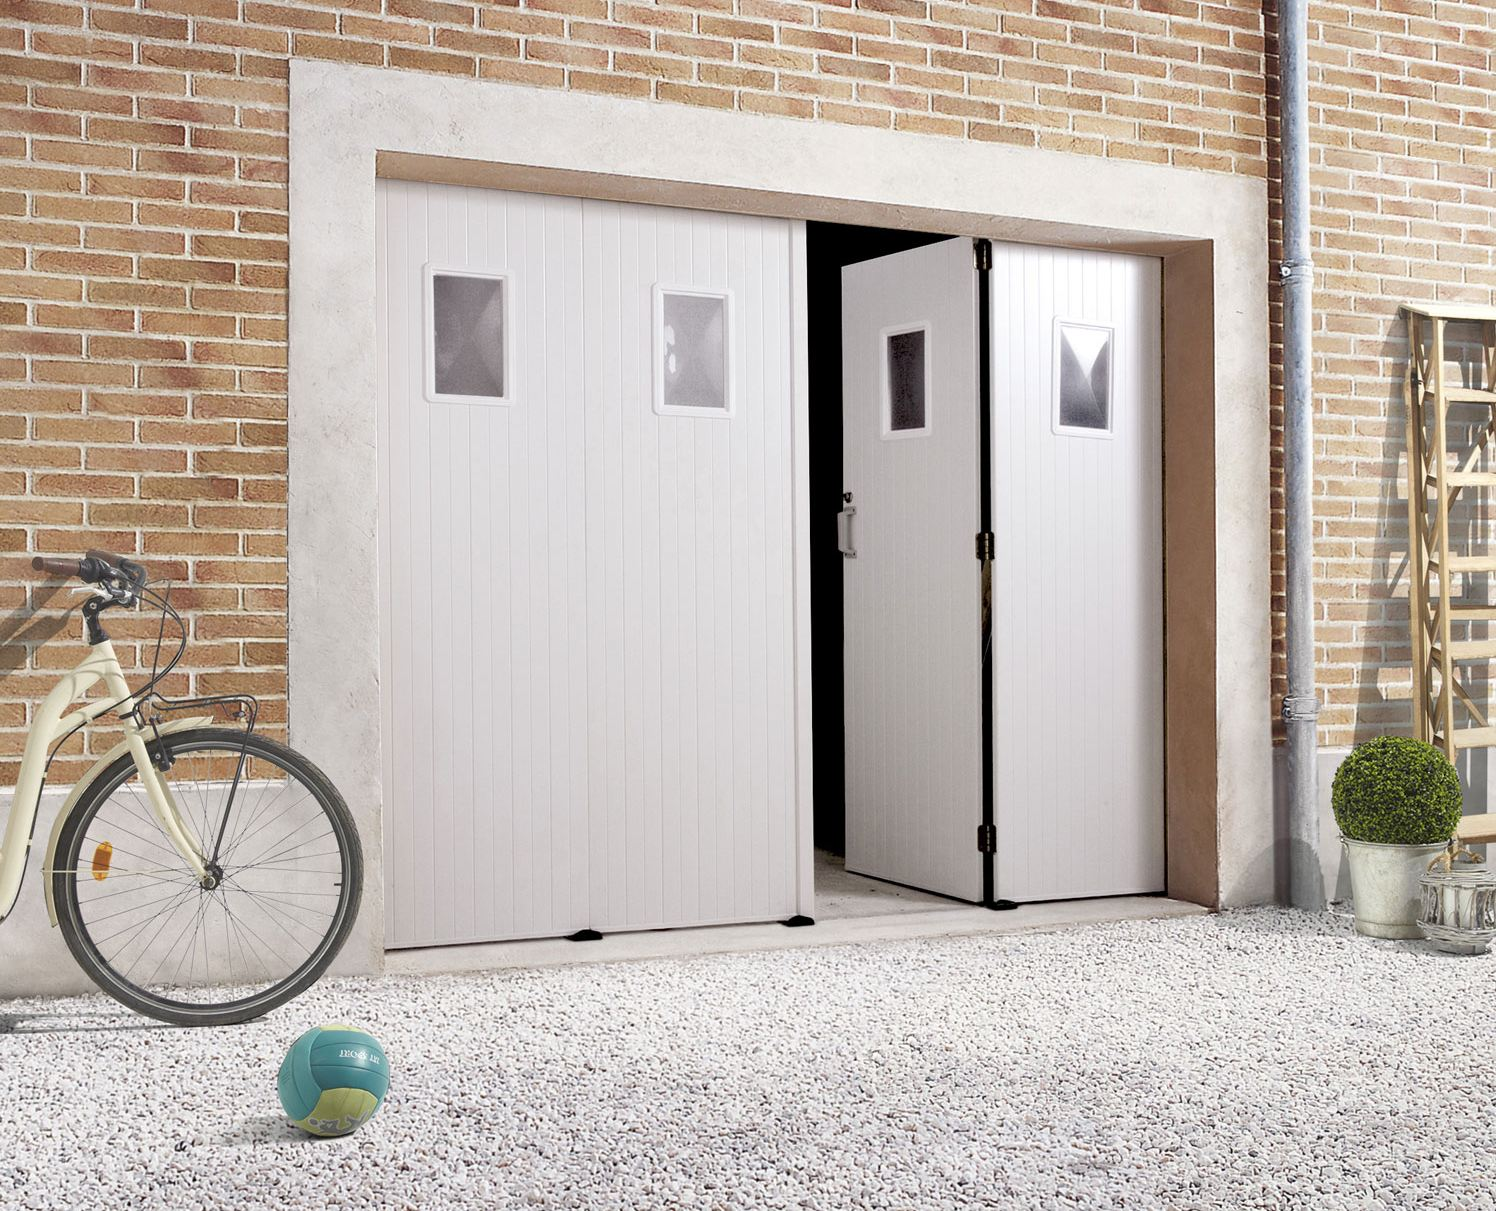 Porte de garage coulissante bois leroy merlin isolation - Garage bois leroy merlin ...